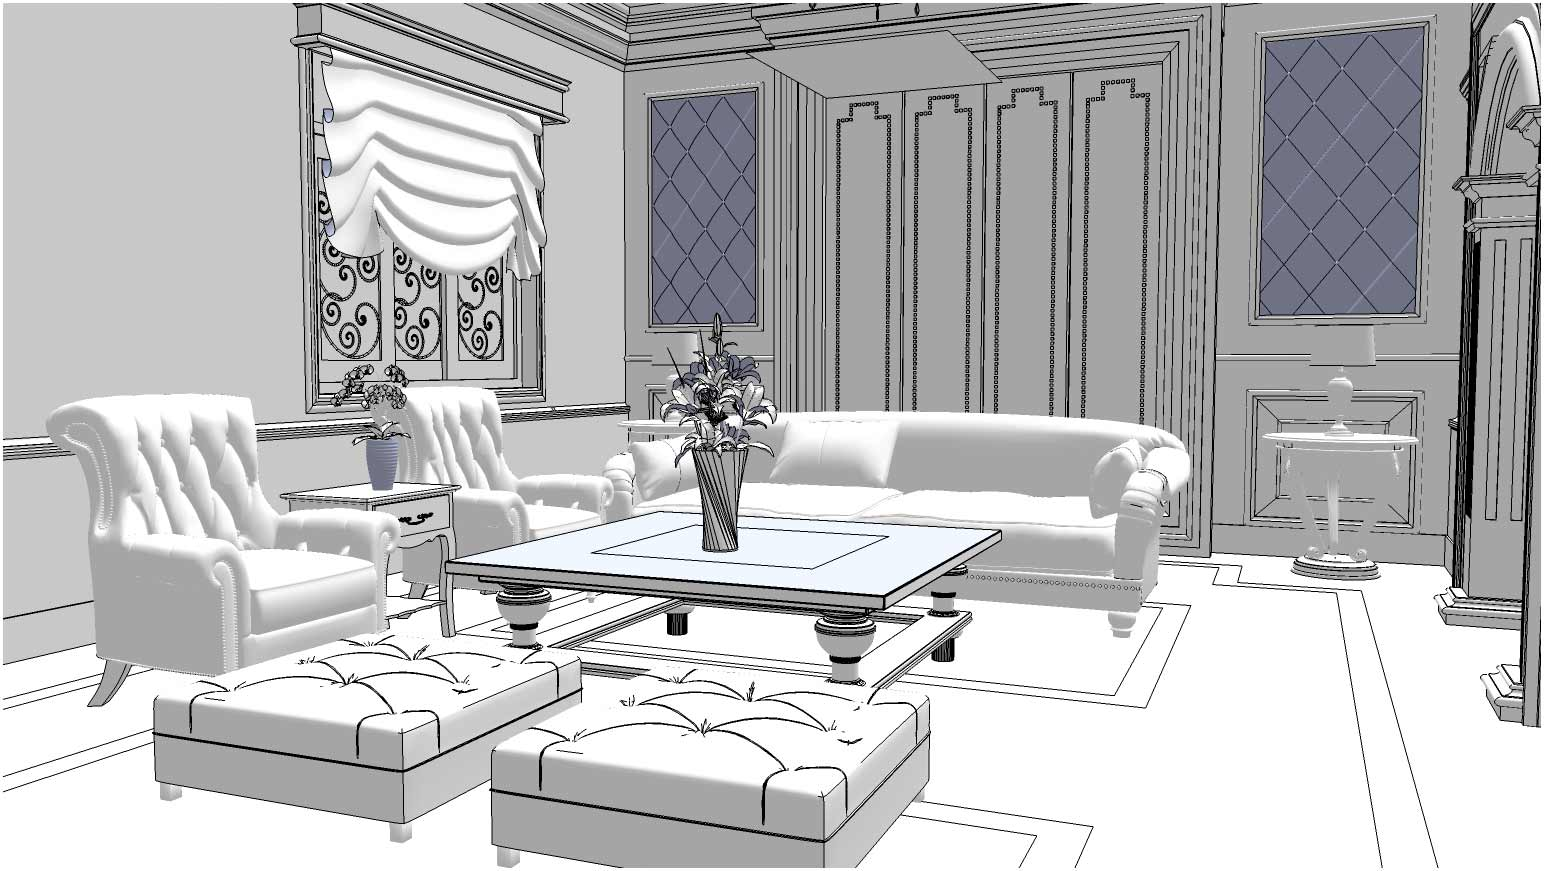 Free sketchup 3d model living room 13 vray sketchup tut for 3d drawing online no download